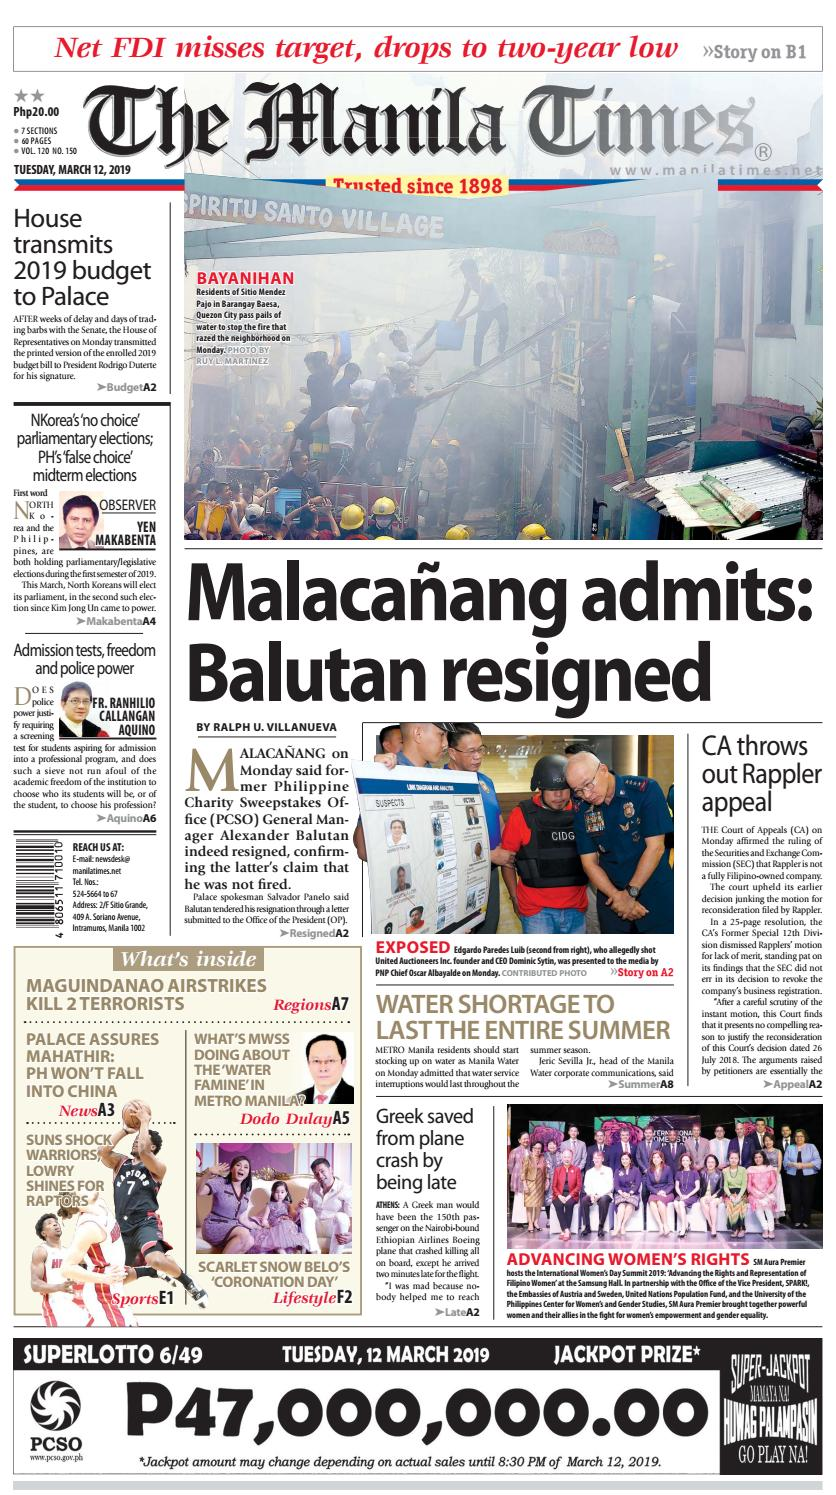 THE MANILA TIMES | MARCH 12, 2019 by The Manila Times - issuu